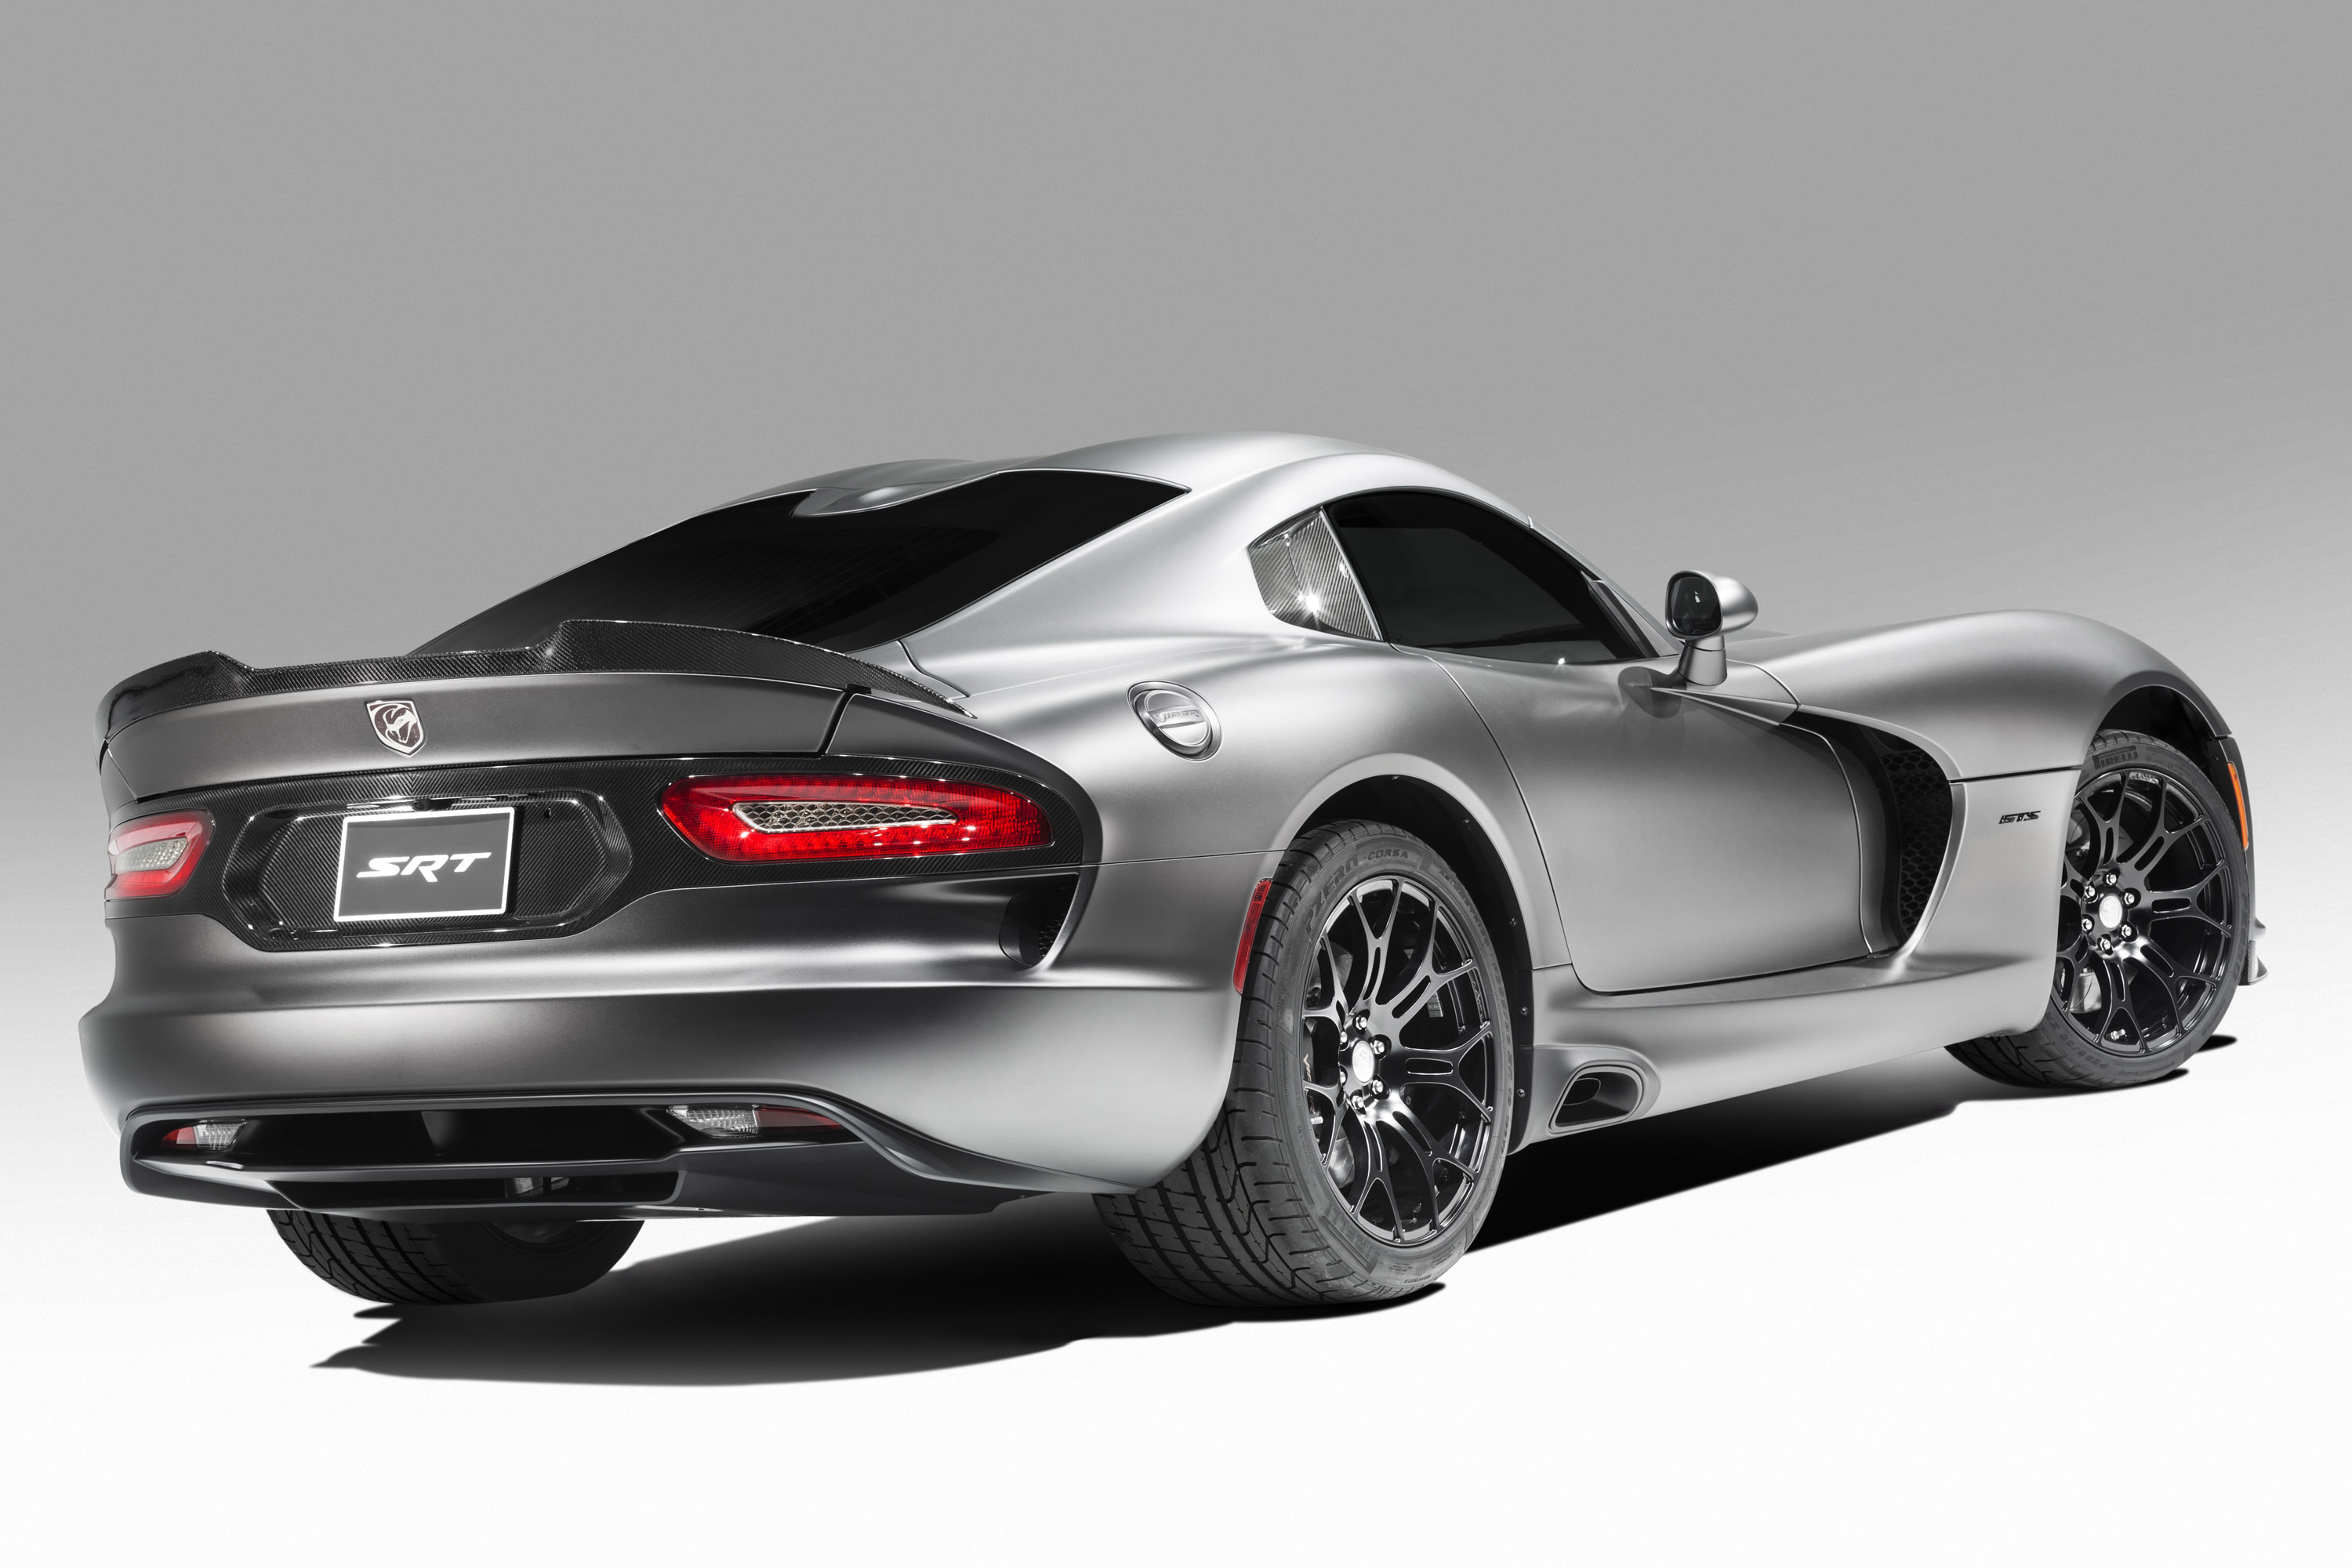 dodge-viper-gts-time-attack-carbon-special-edition-02